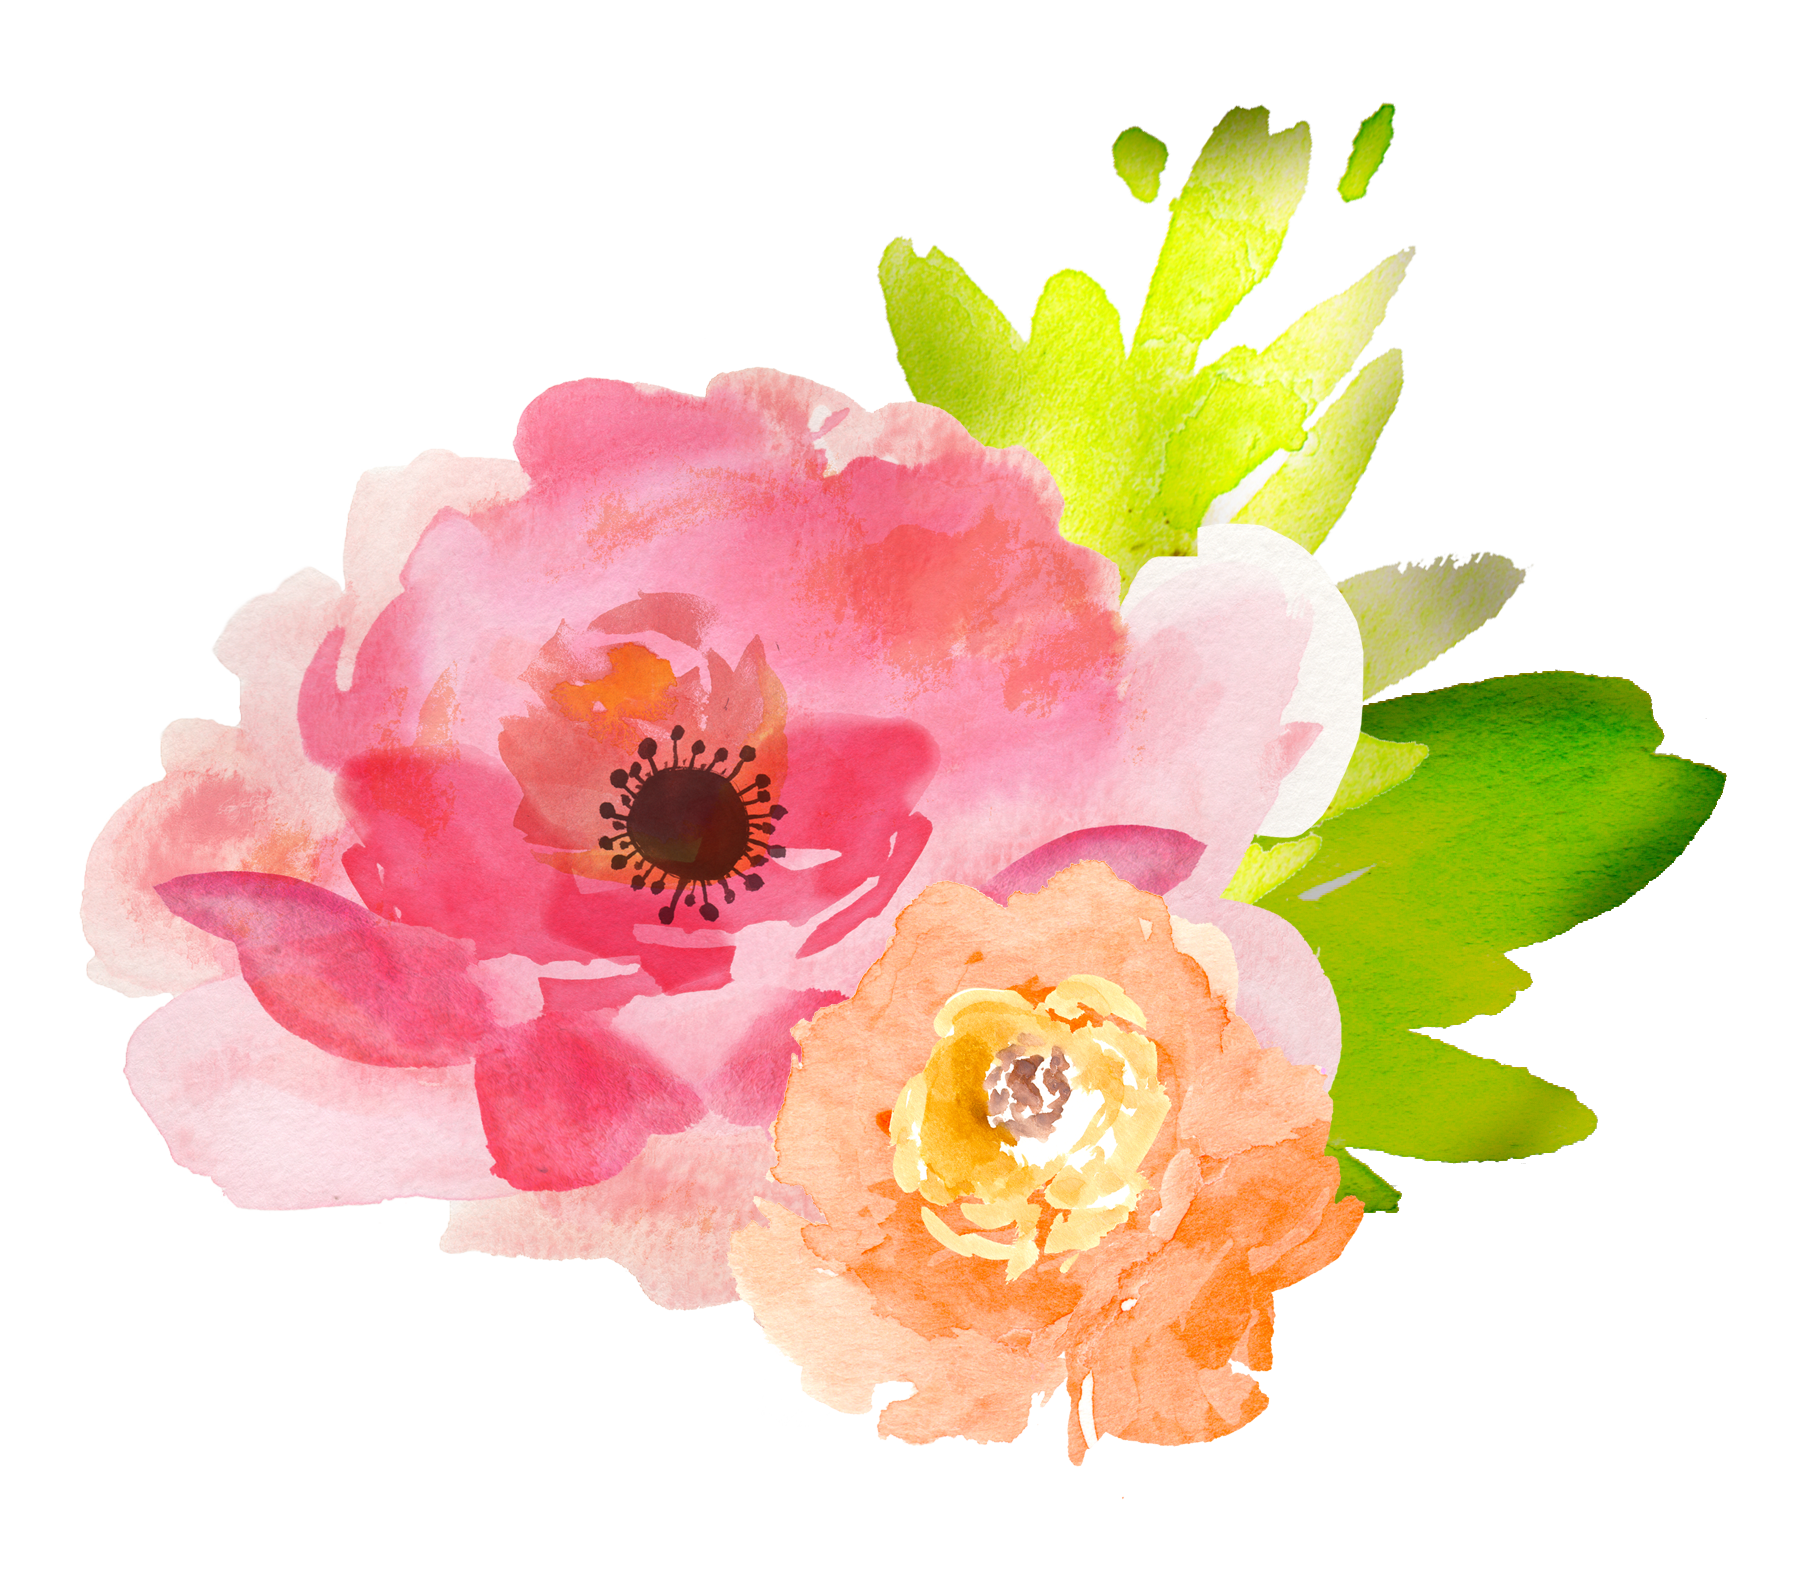 Pink water color flower png. Watercolour flowers watercolor painting